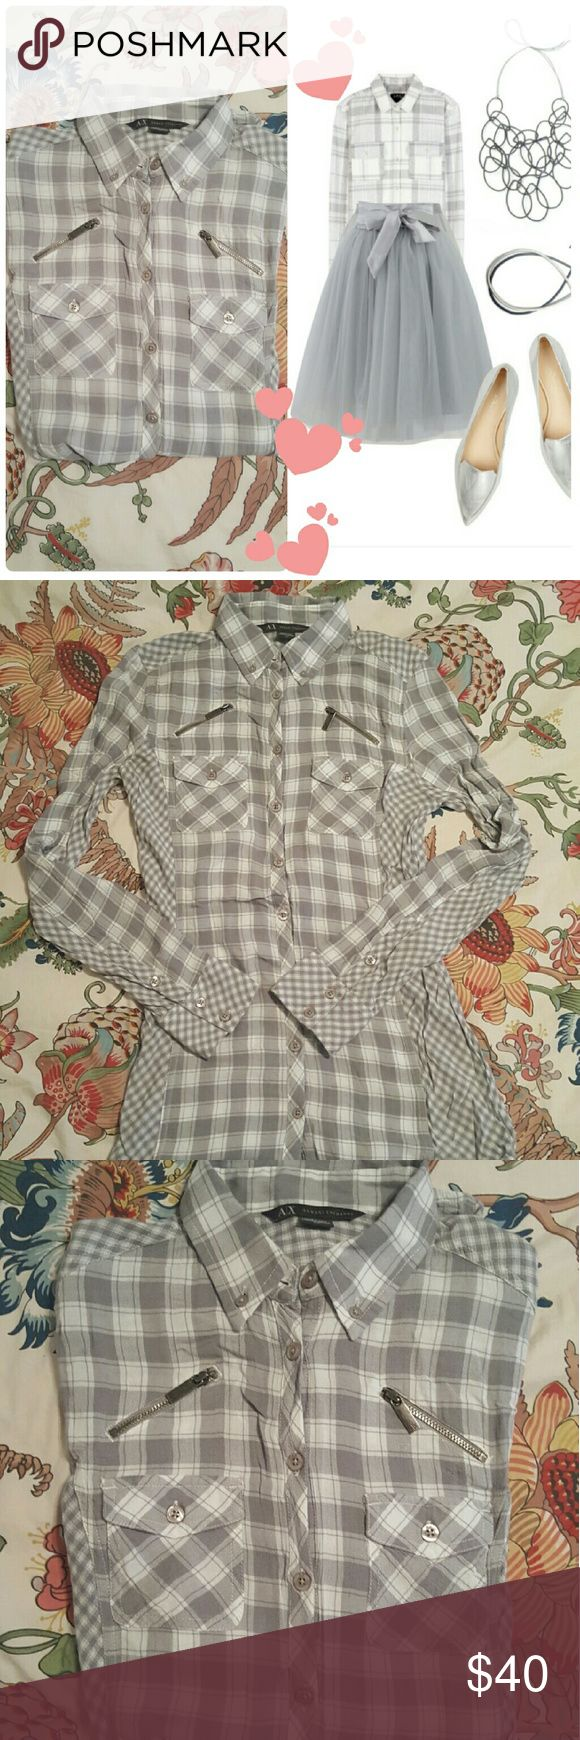 Armani Exchange gray plaid lightweight flannel Long and lean with zipper details, and varying plaid pattern on sides and wrists, this Armani Exchange blouse is just darling and long enough to wear with leggings! Very figure flattering add it hugs the waist and hips. Perfect for a casual day or dress it up! Size small or Xsmall would fit best, with some stretch to the lightweight material. Armani Exchange Tops